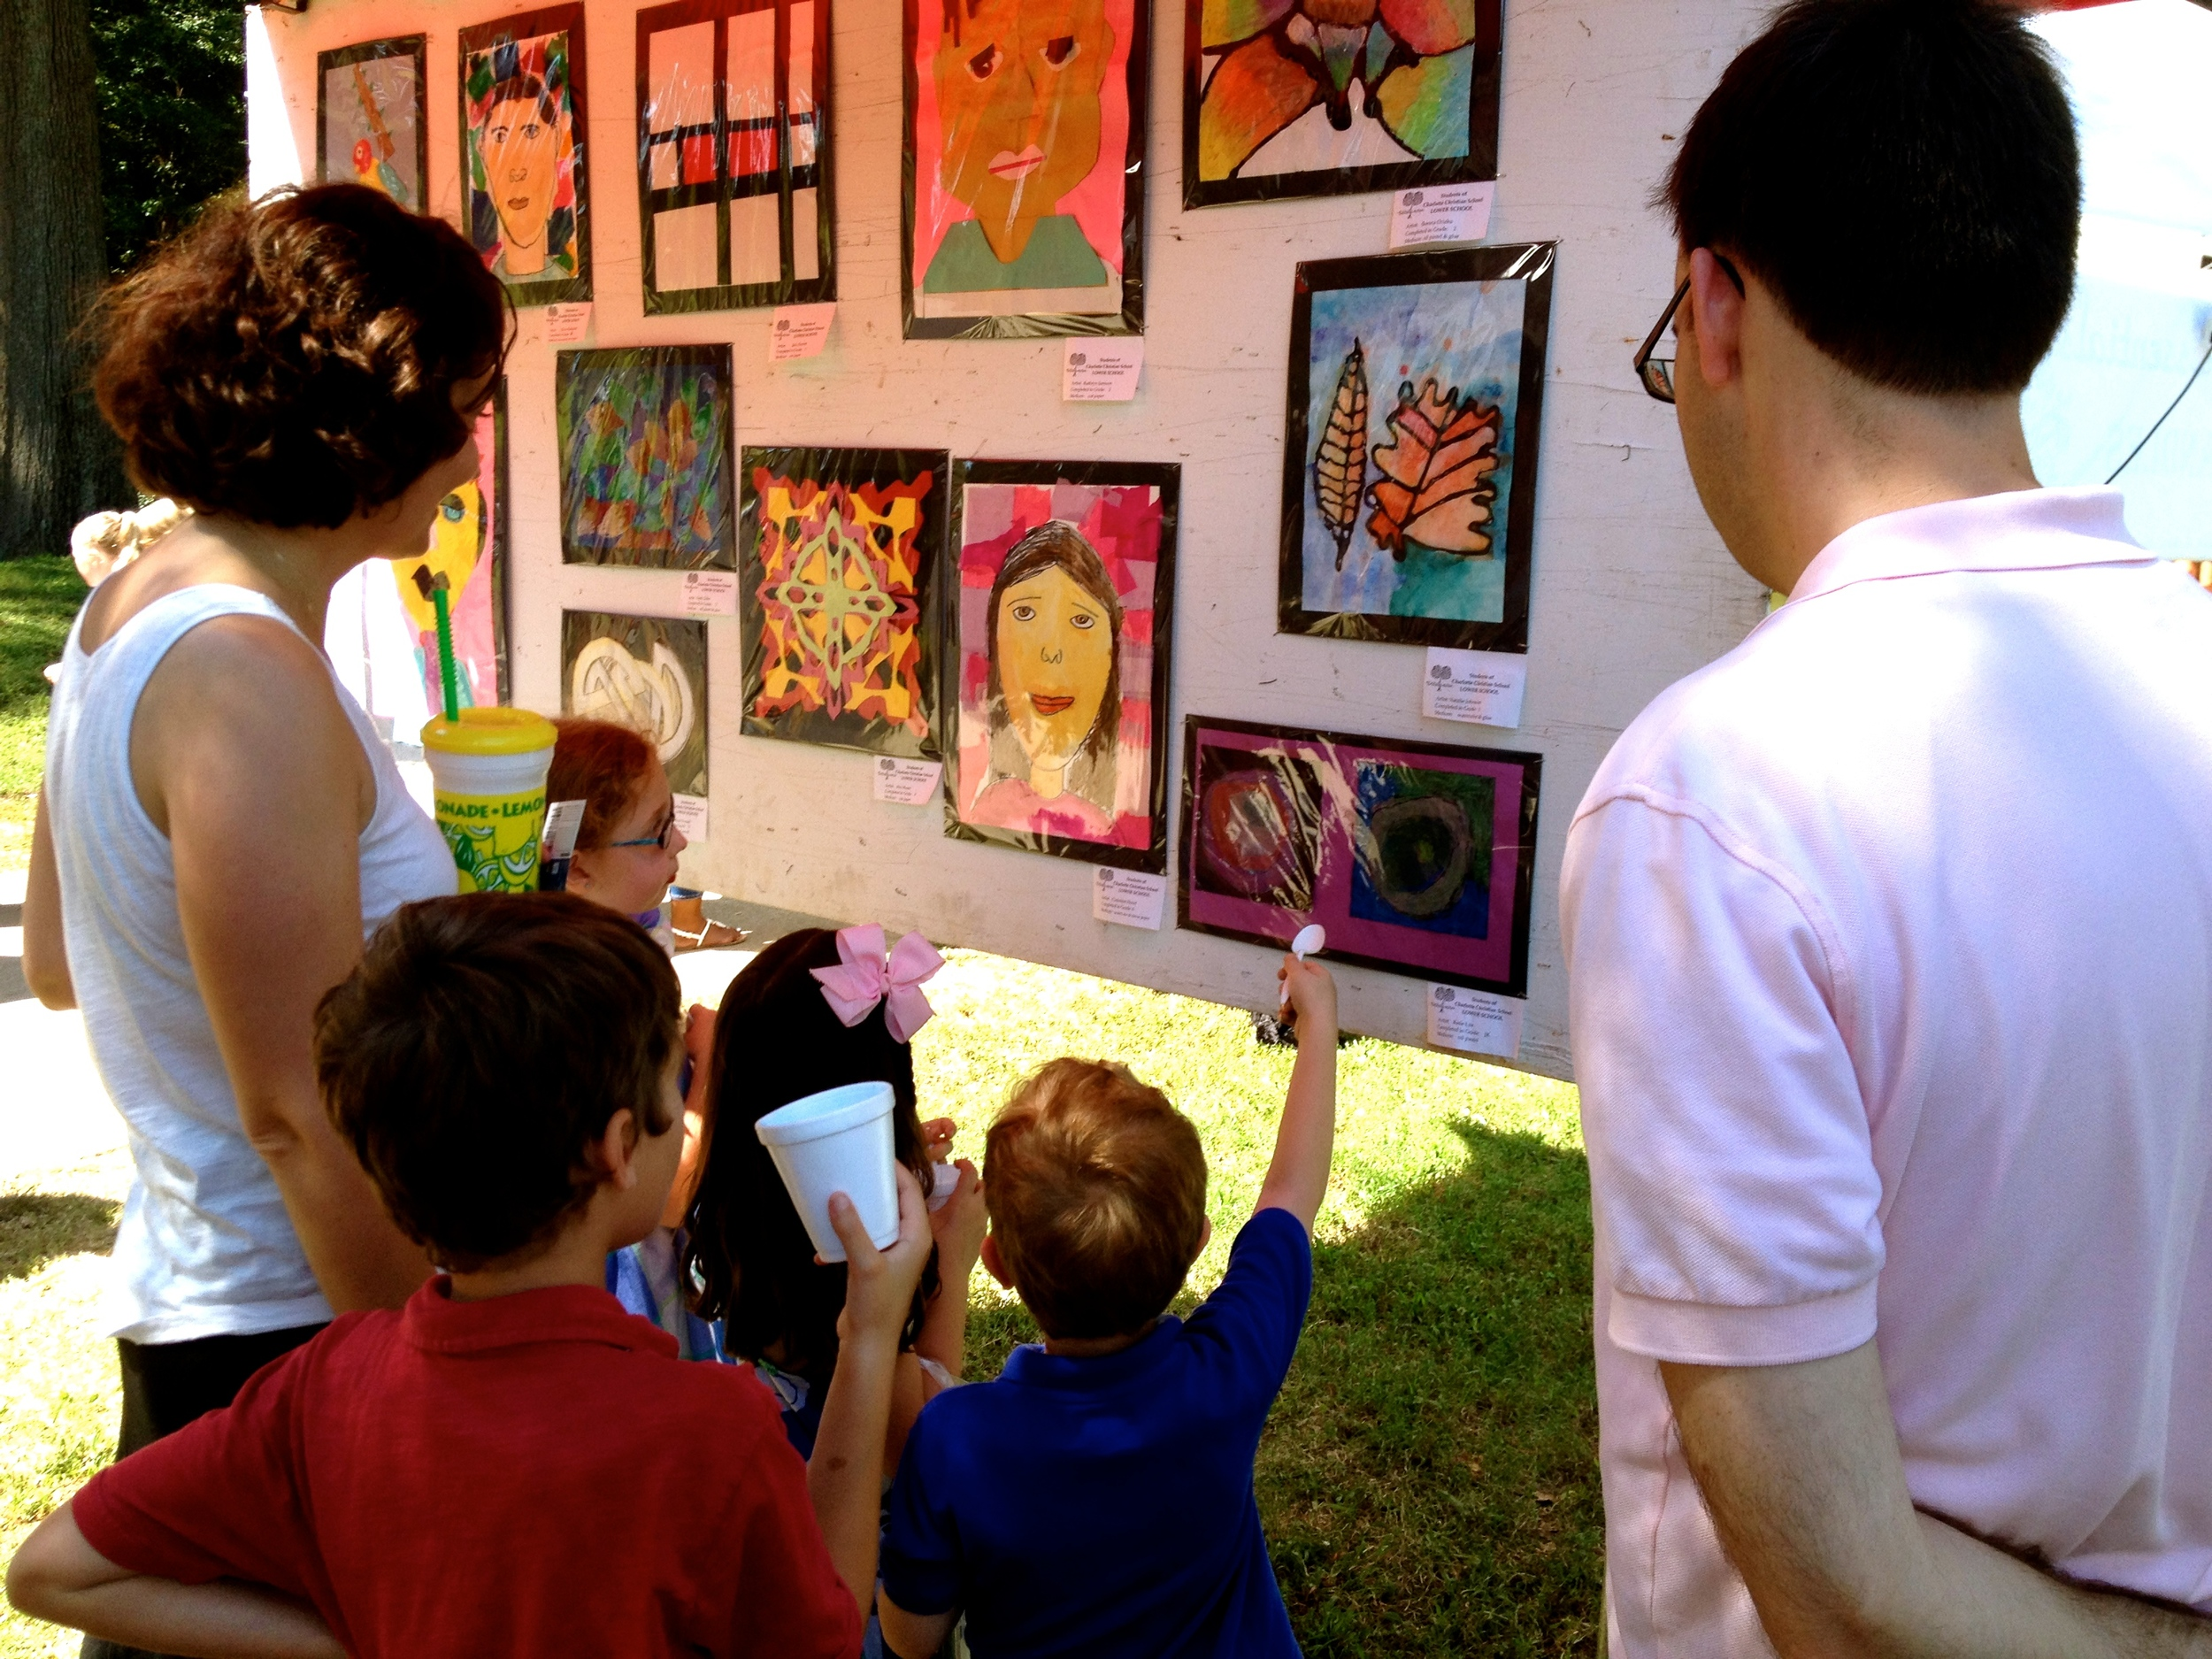 With the Lyes, checking out our friend Katie's art work